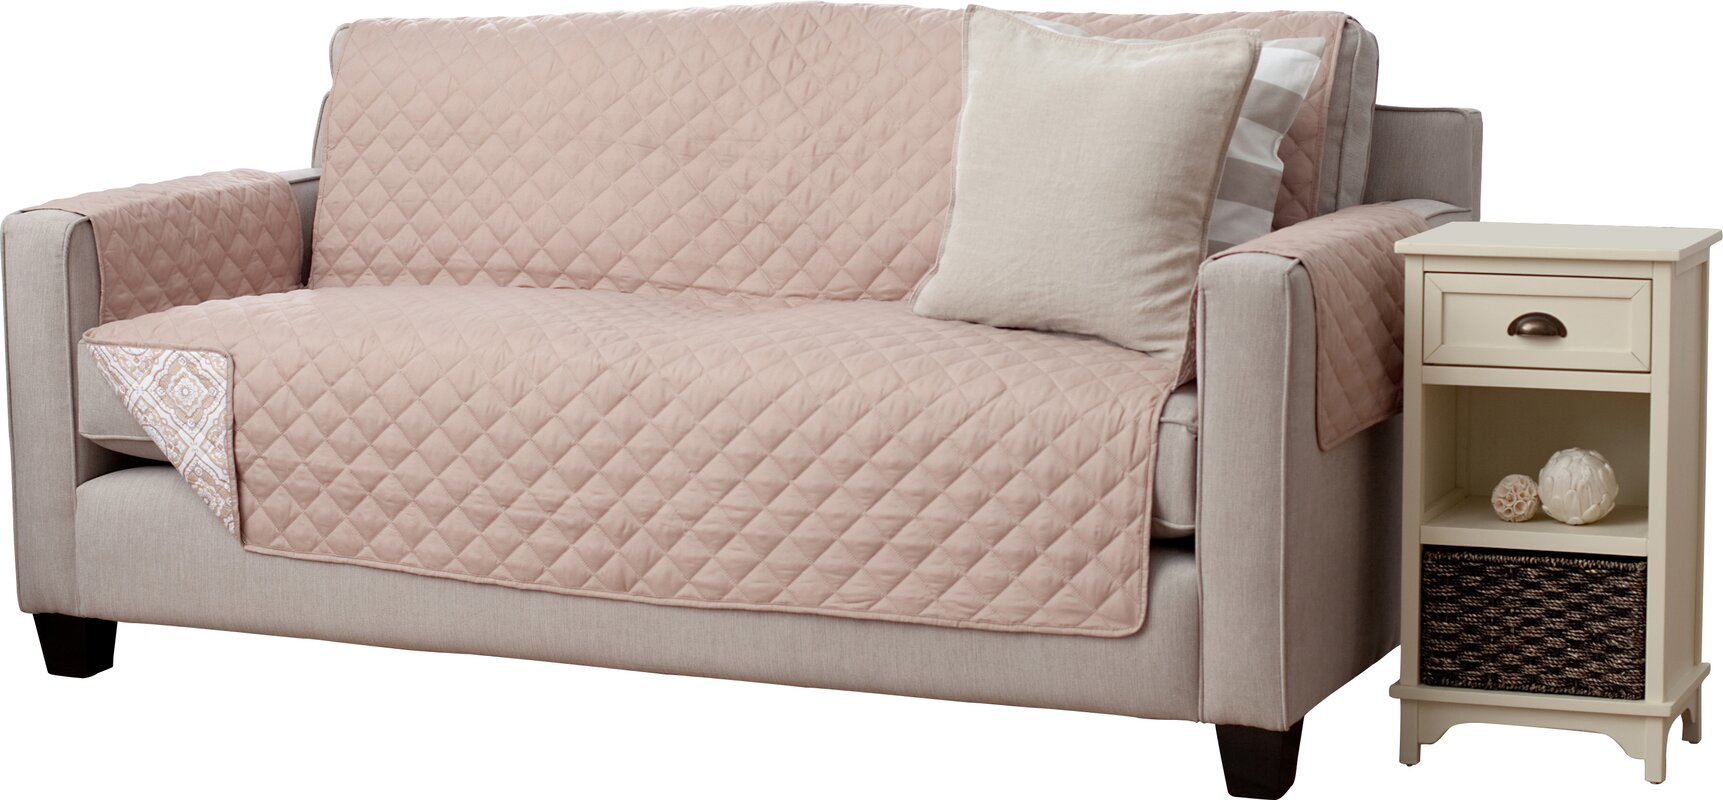 Adalyn Diamond Geo Box Cushion Sofa Slipcover